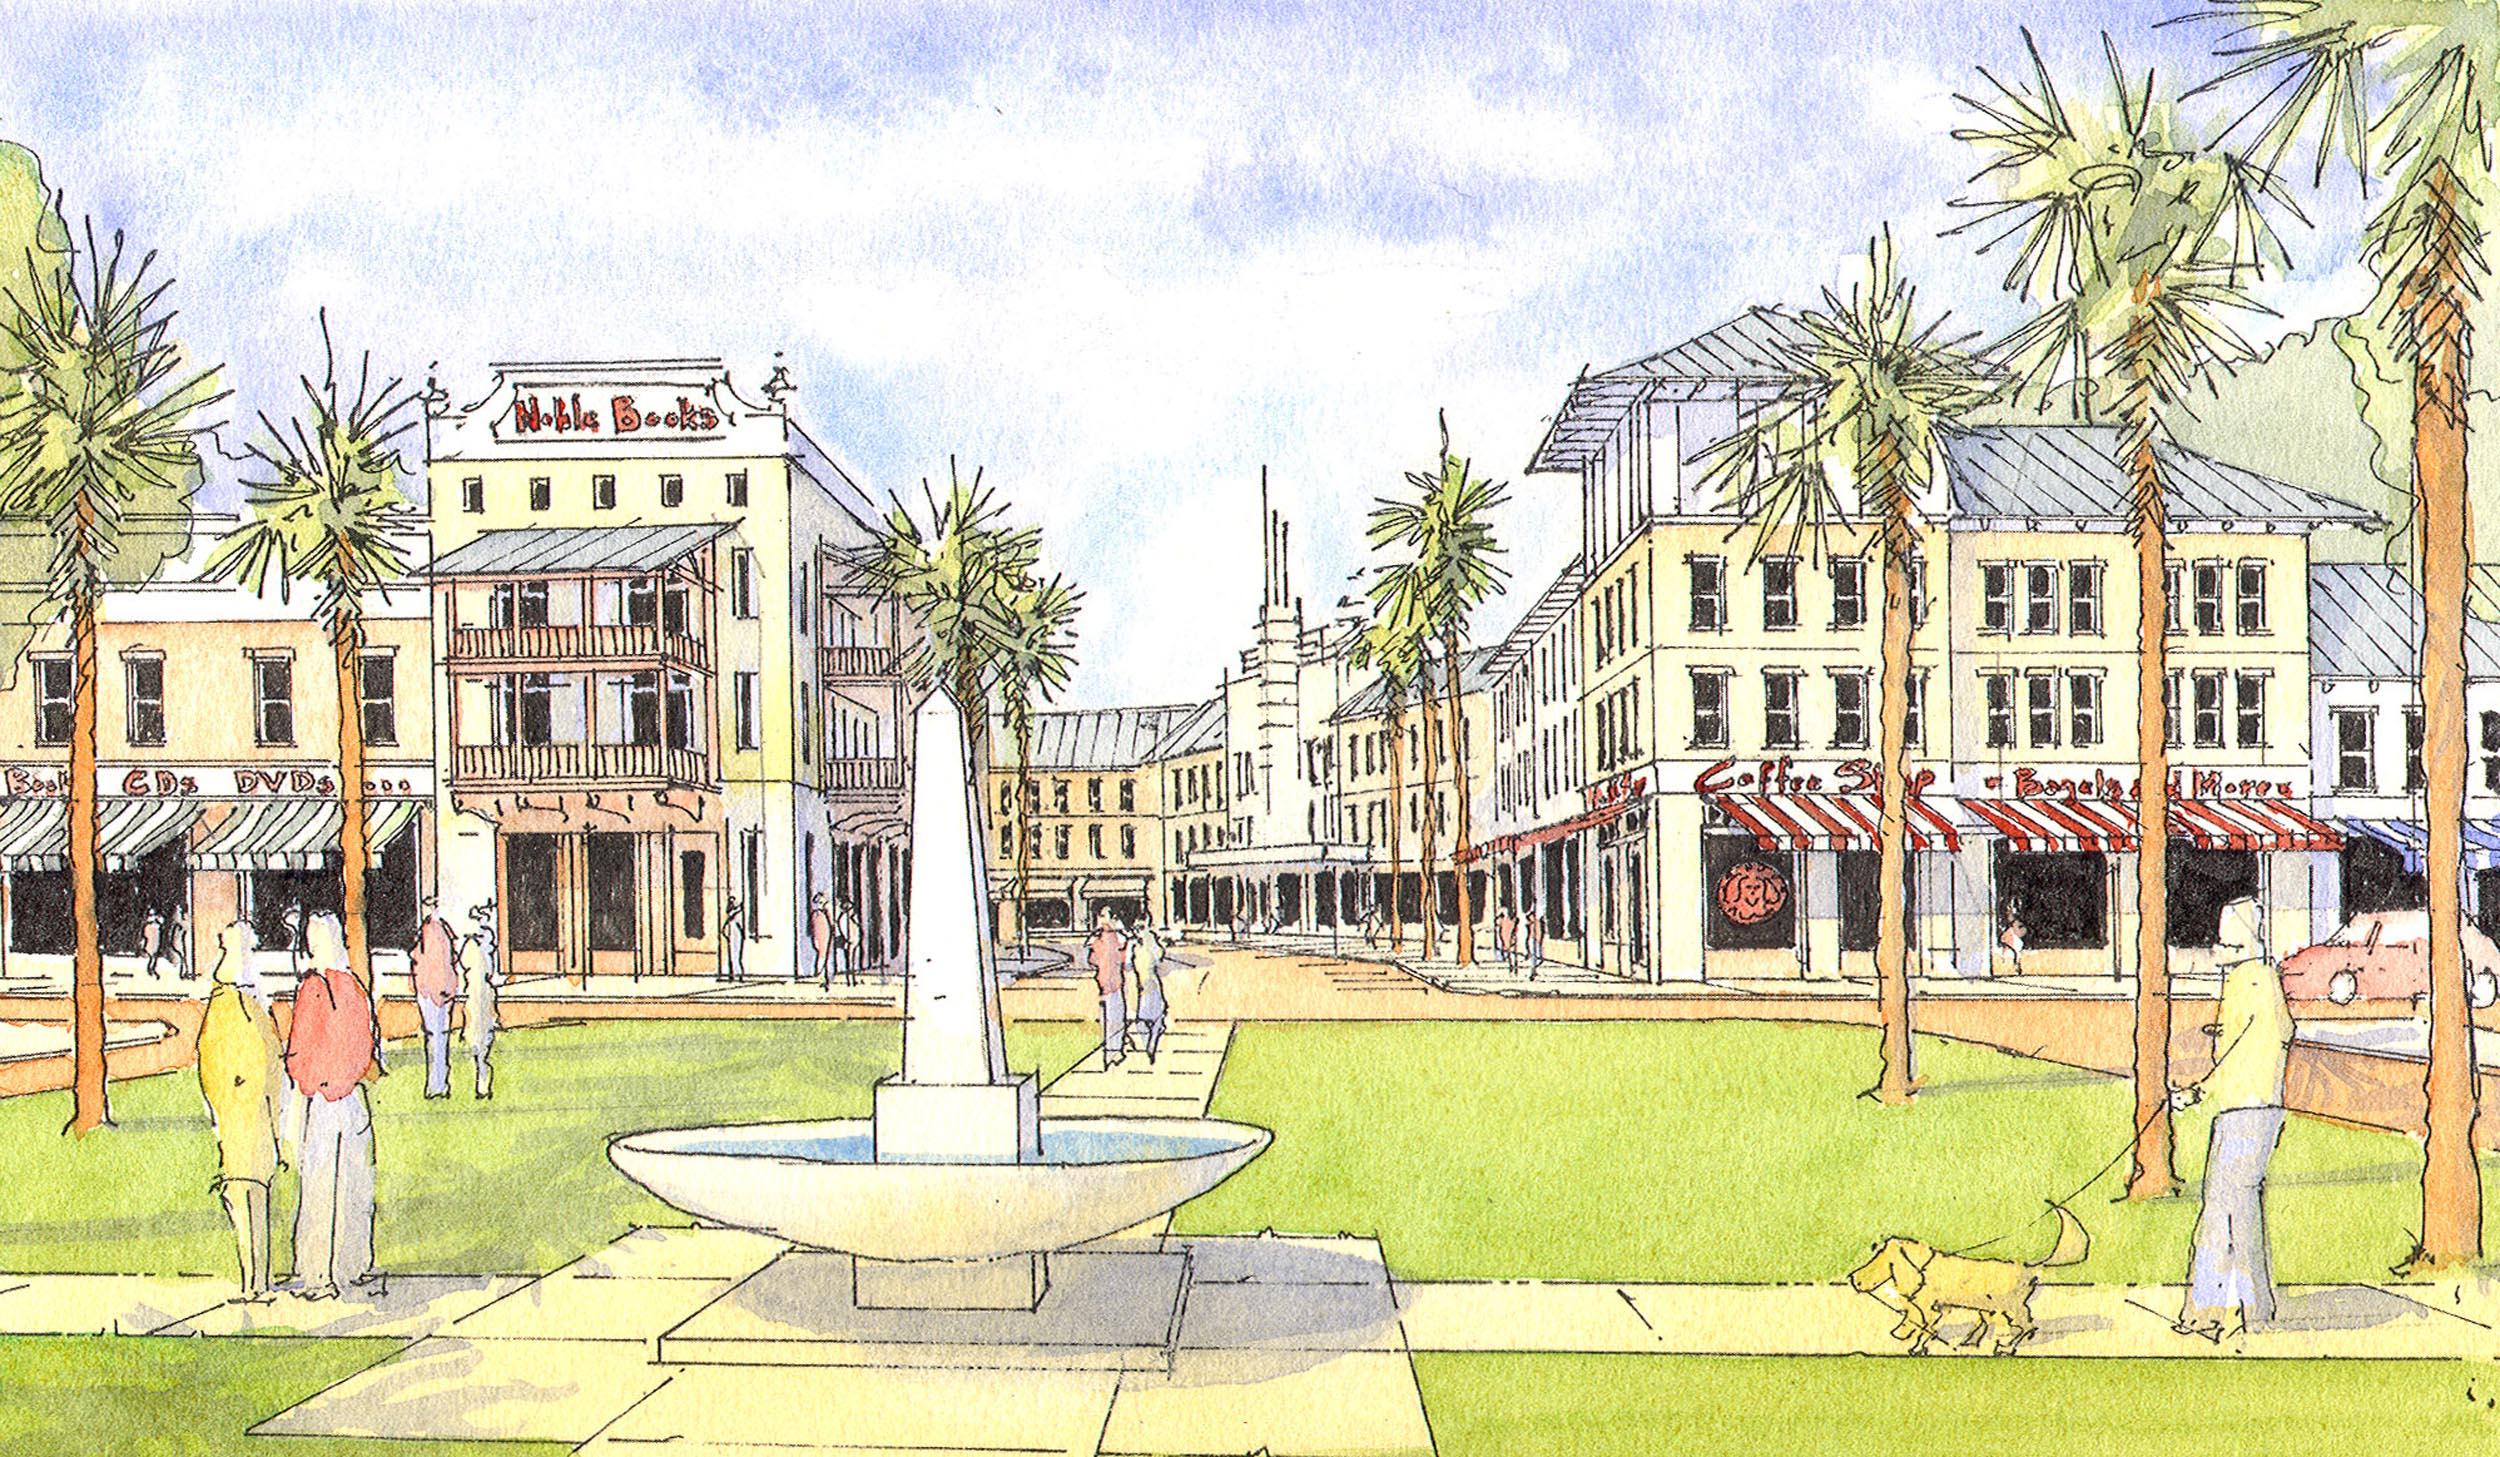 Beaufort Plaza as a mixed-use center